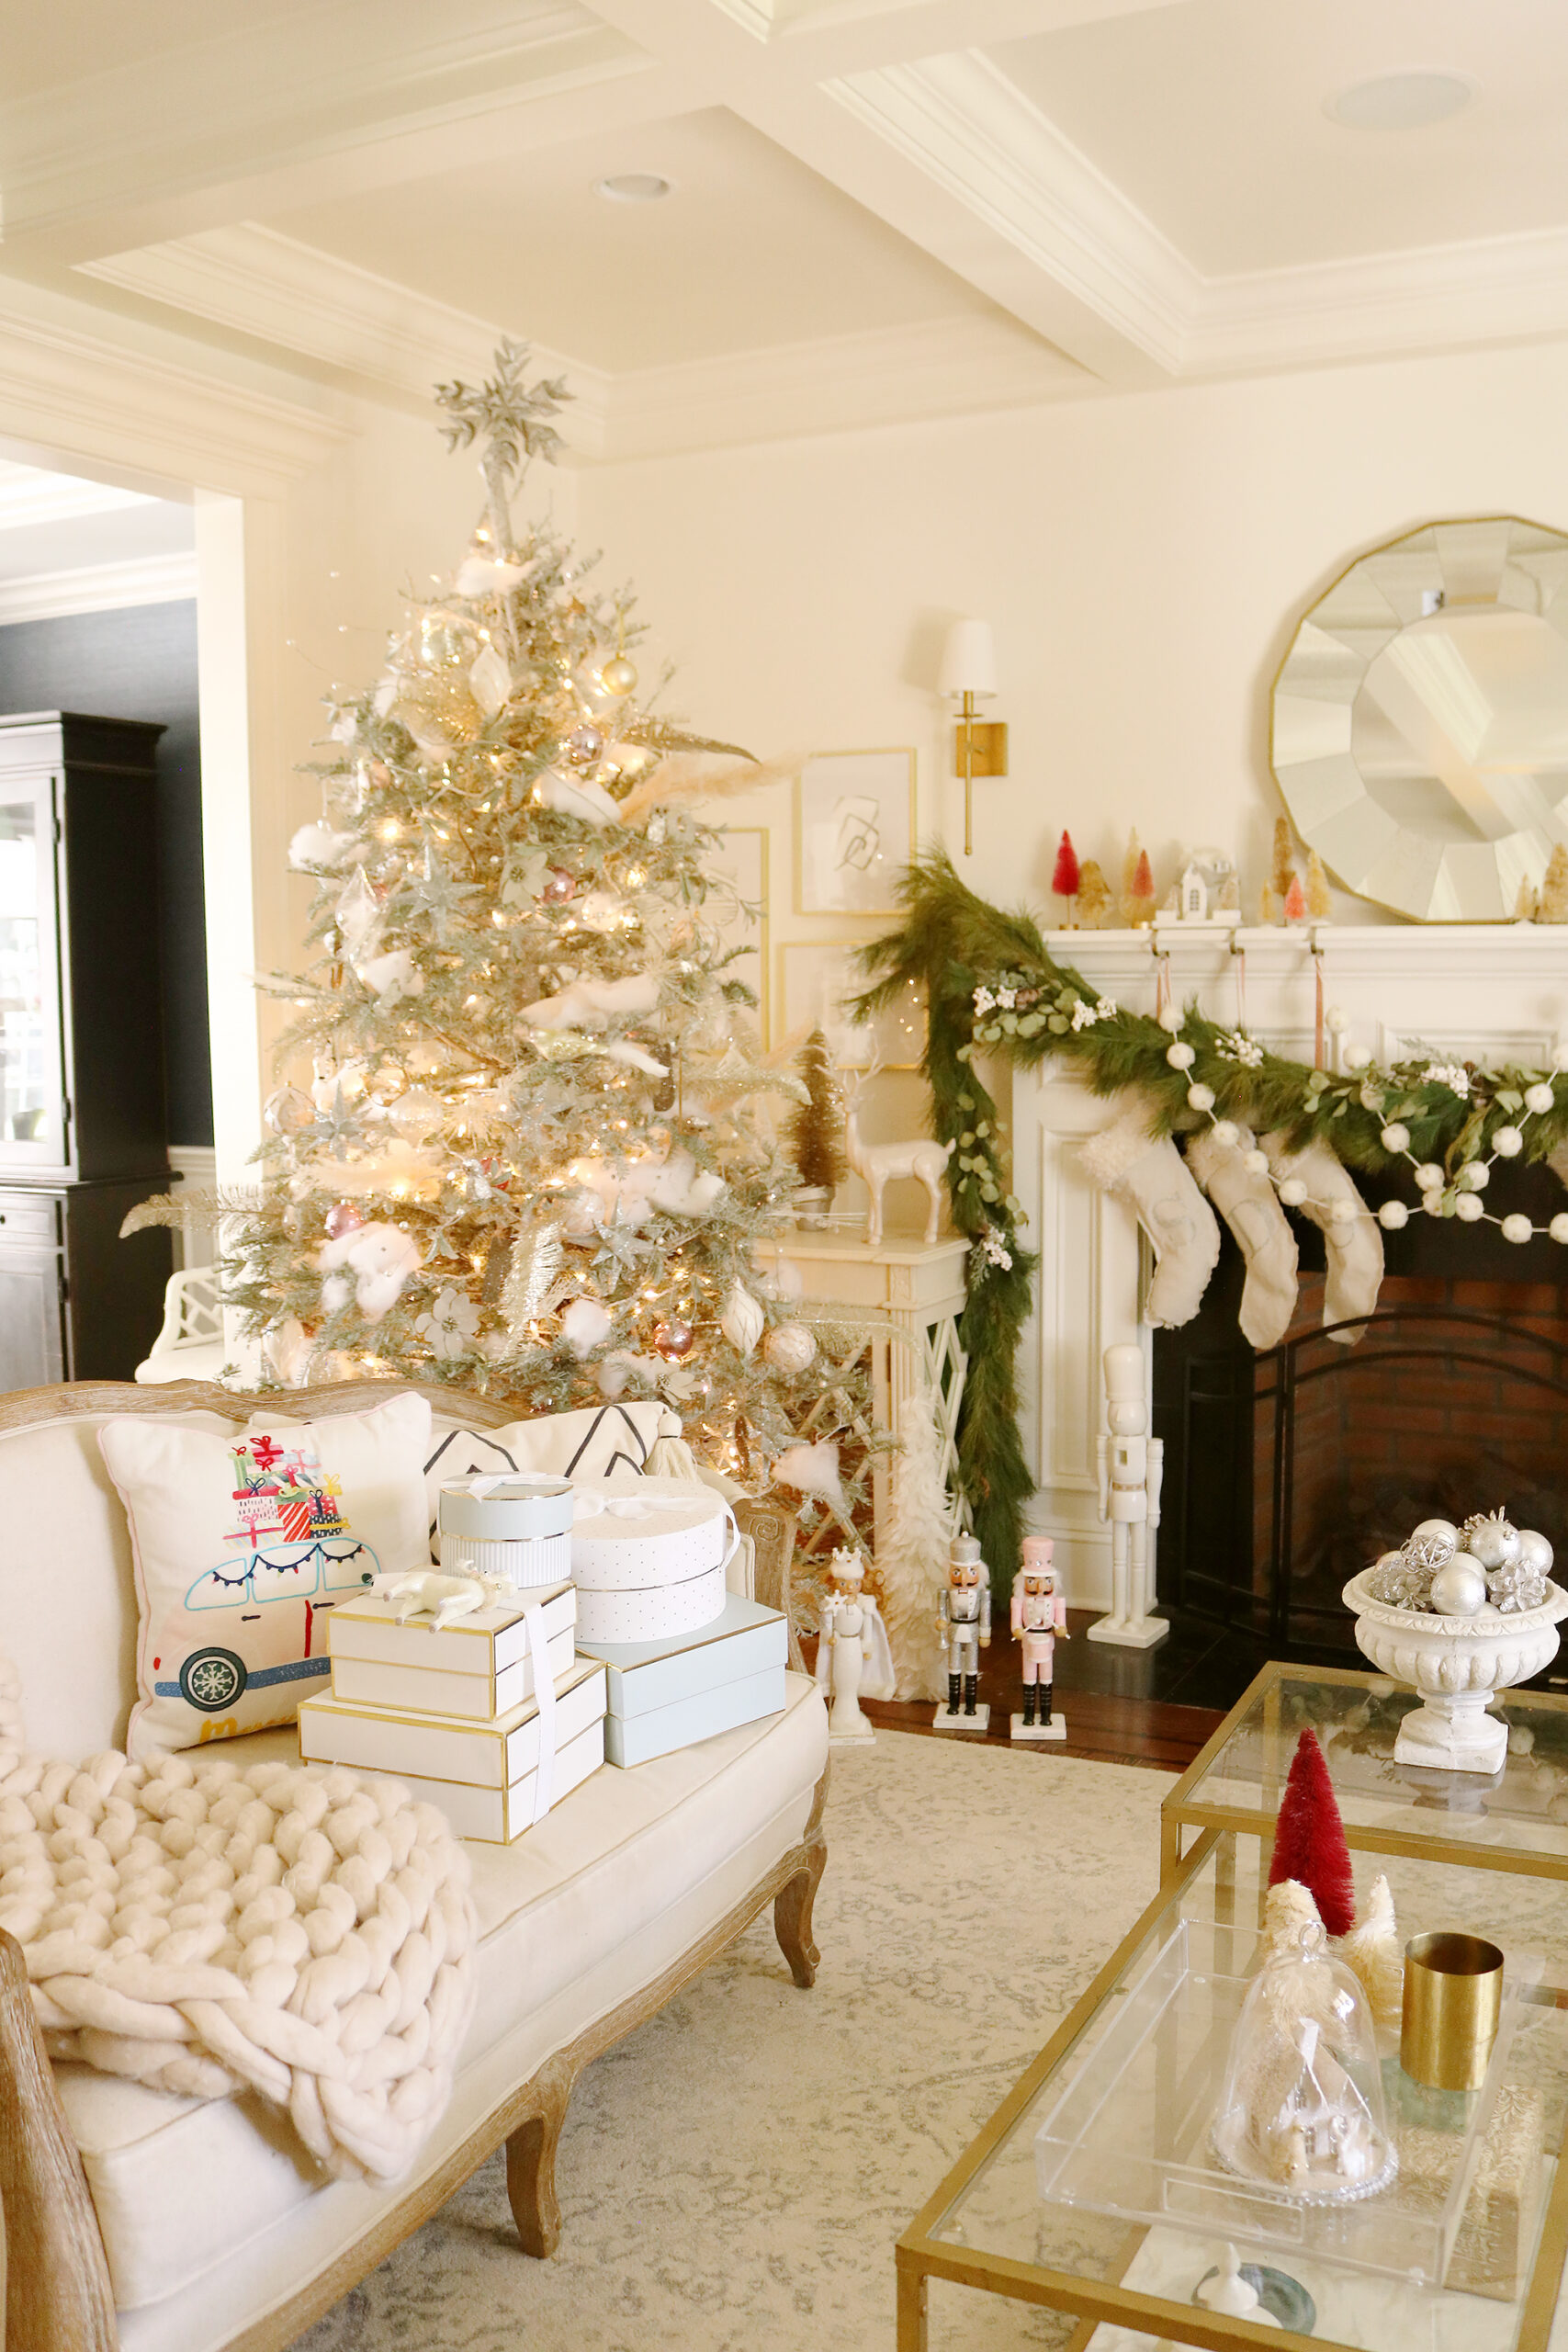 Holiday gifts for the whole family!  Last minute holiday gifts for the family and will get there in time for Christmas, gifts for women, gifts for men, gifts for girls, gifts for boys    Darling Darleen Top Lifestyle Blogger